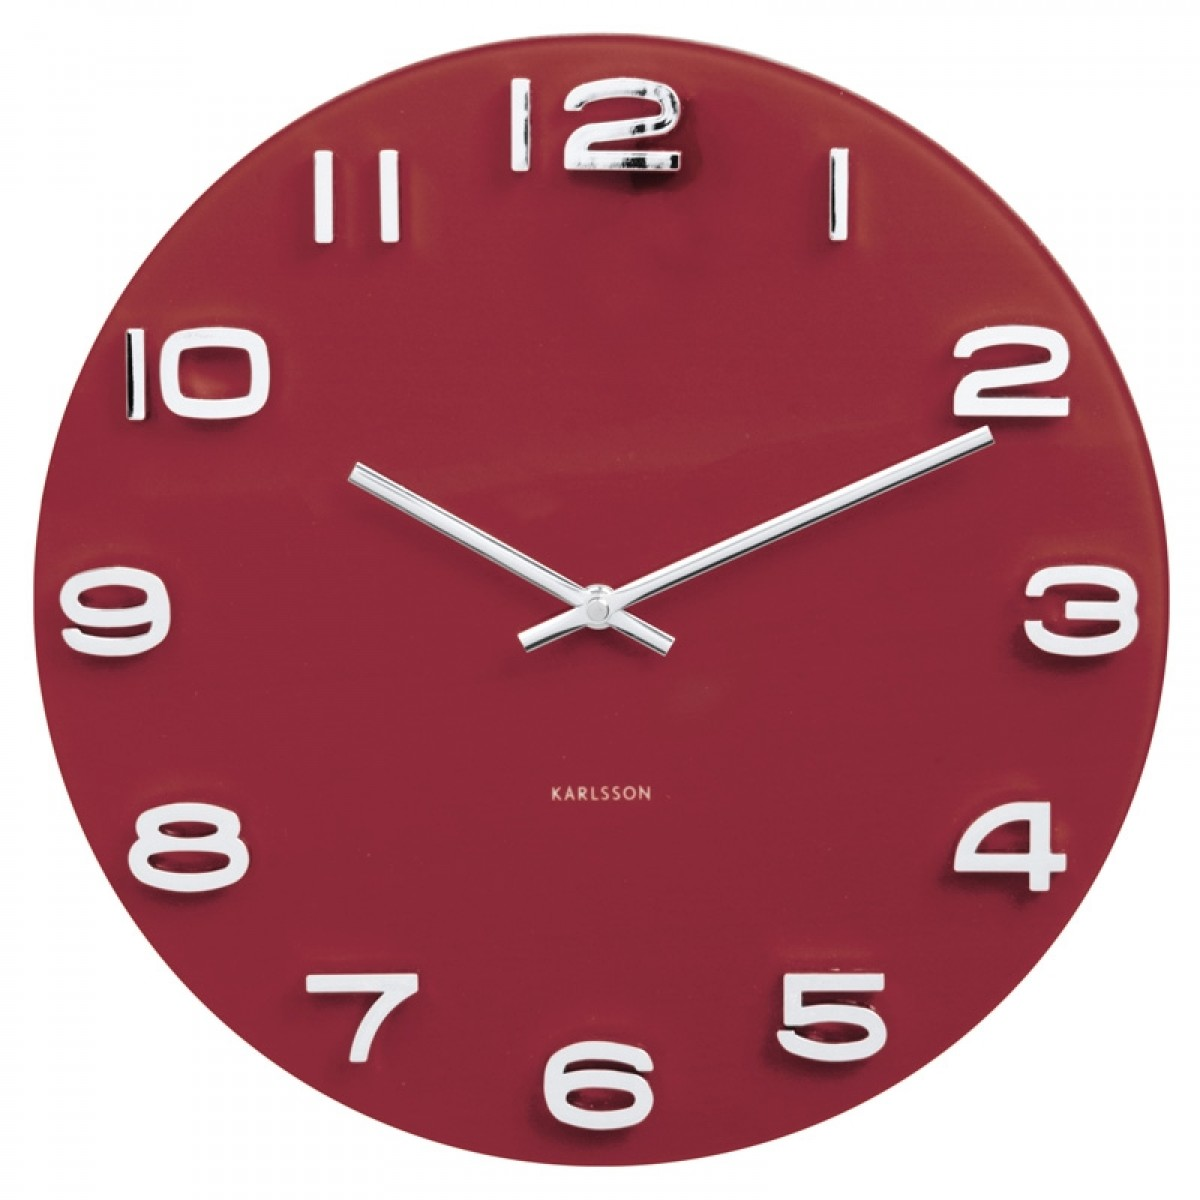 Karlsson clocks wall alarm clocks red candy karlsson vintage round glass clock burgundy red wall clock amipublicfo Image collections